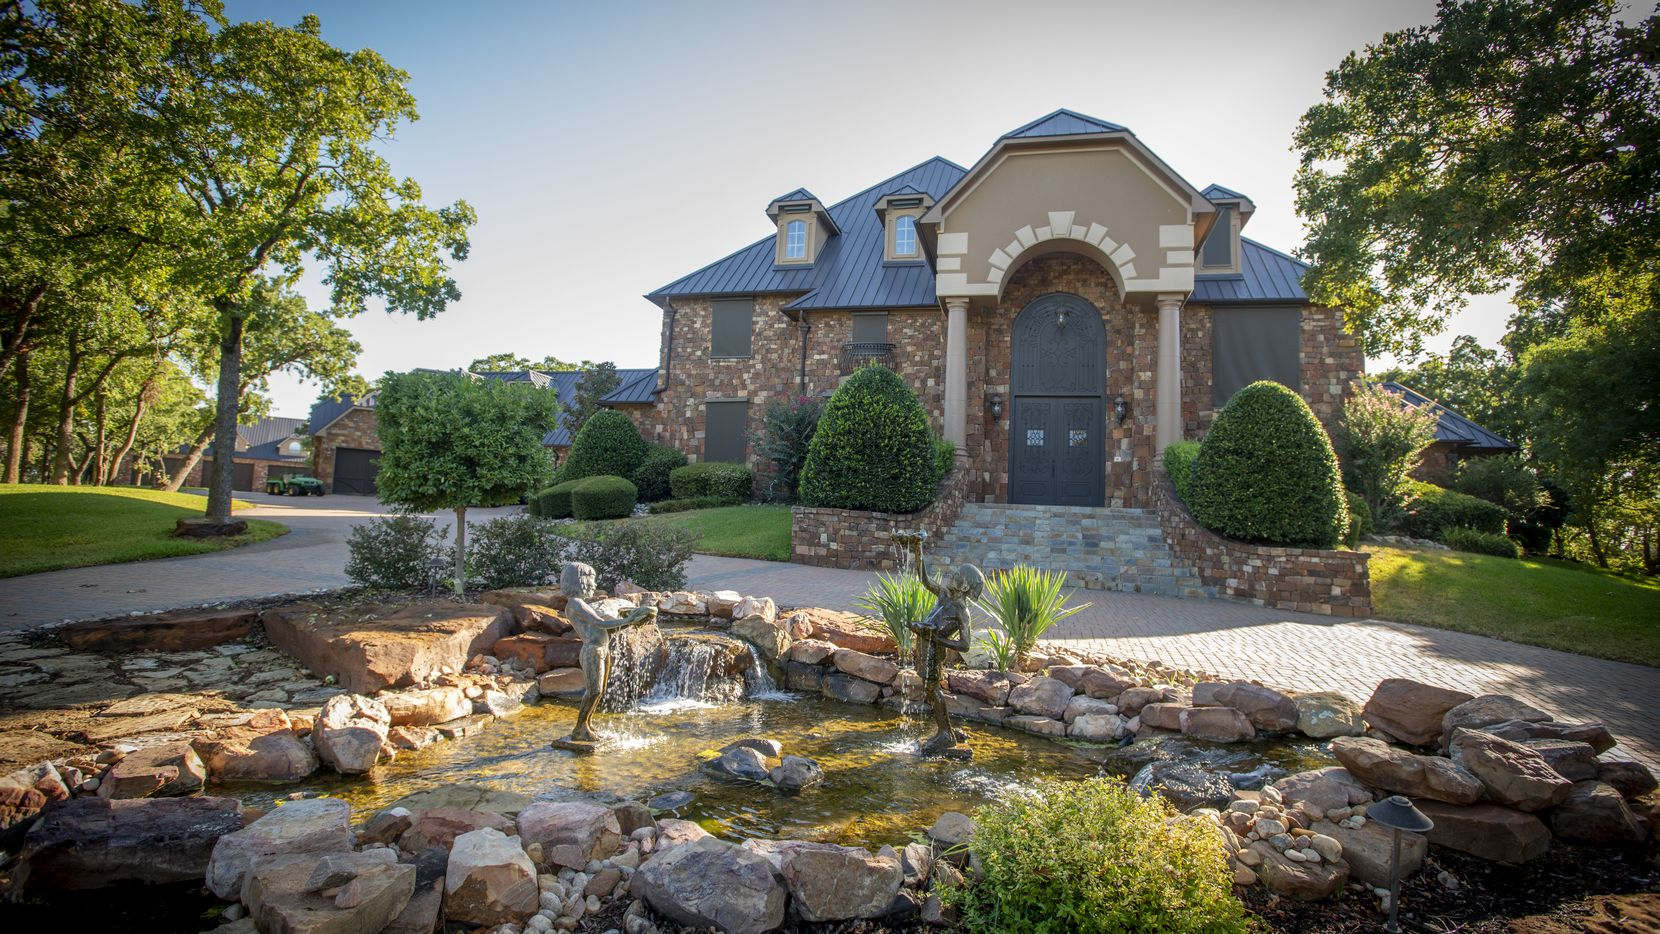 Exterior of main house at 5101 Kensington Ct., in Flower Mound, Texas on August 19, 2020. (Robert W. Hart/Special Contributor)